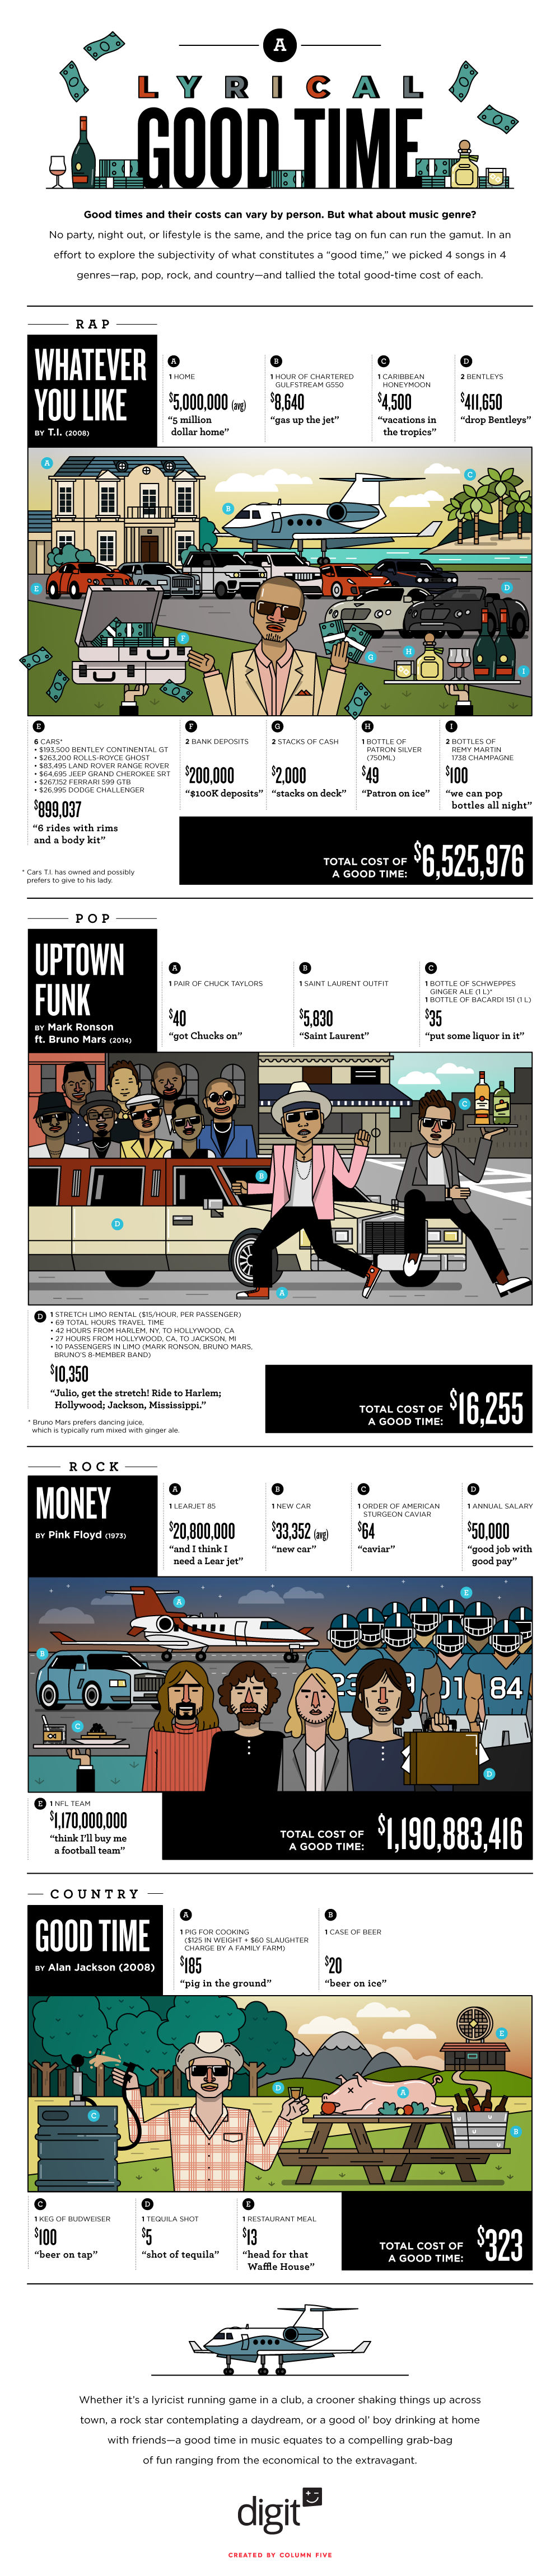 Cost of Good Times: What the Songs Say - Infographic